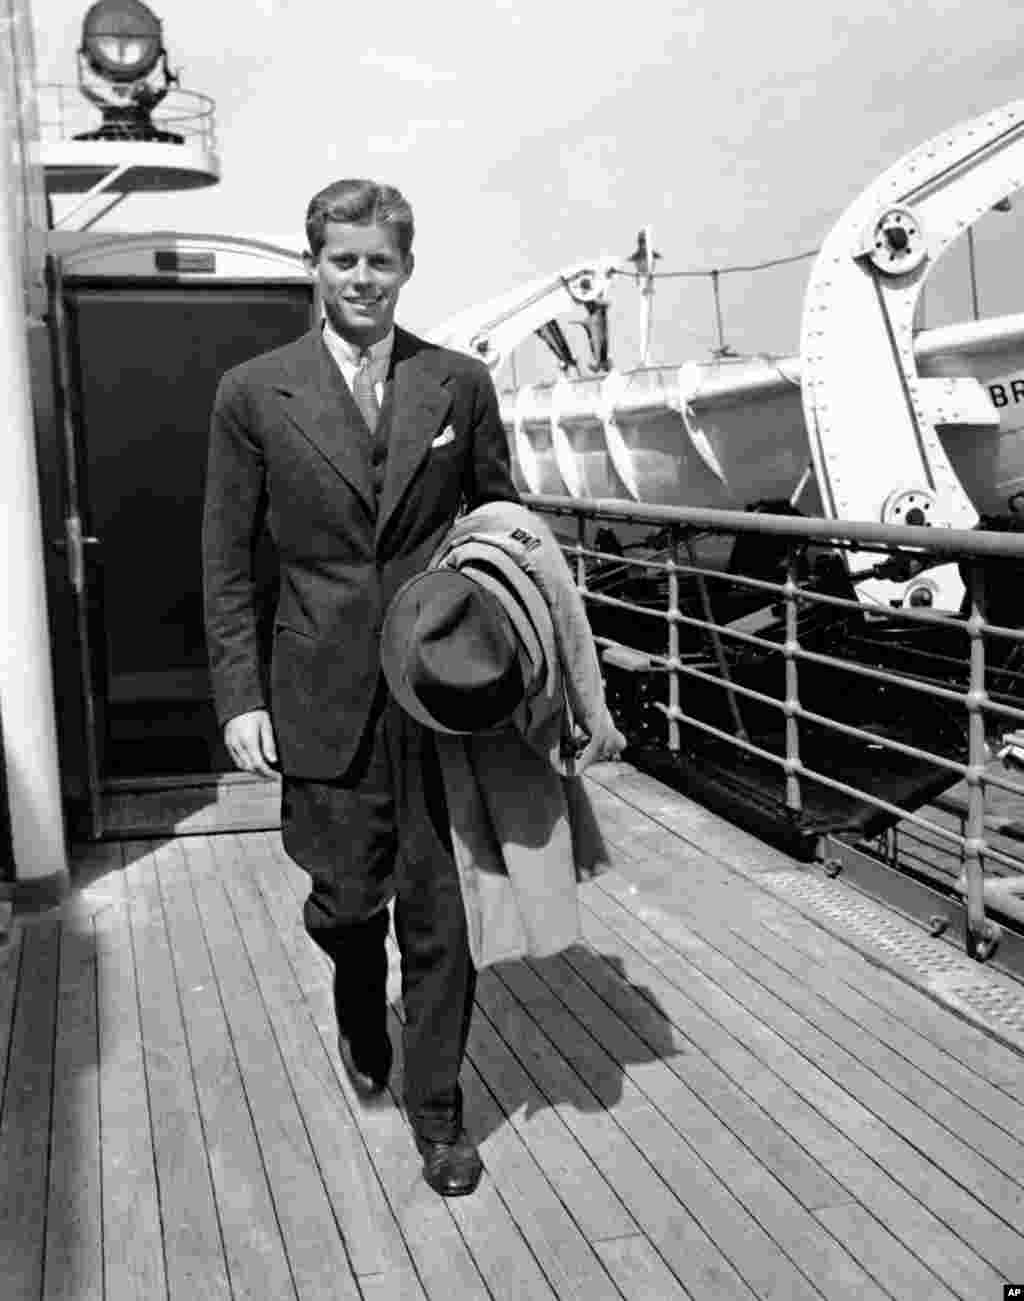 John F. Kennedy returns to New York after a summer holiday in Europe in 1938, three years before beginning the wartime naval service that would propel him into Congress and ultimately the U.S. presidency.